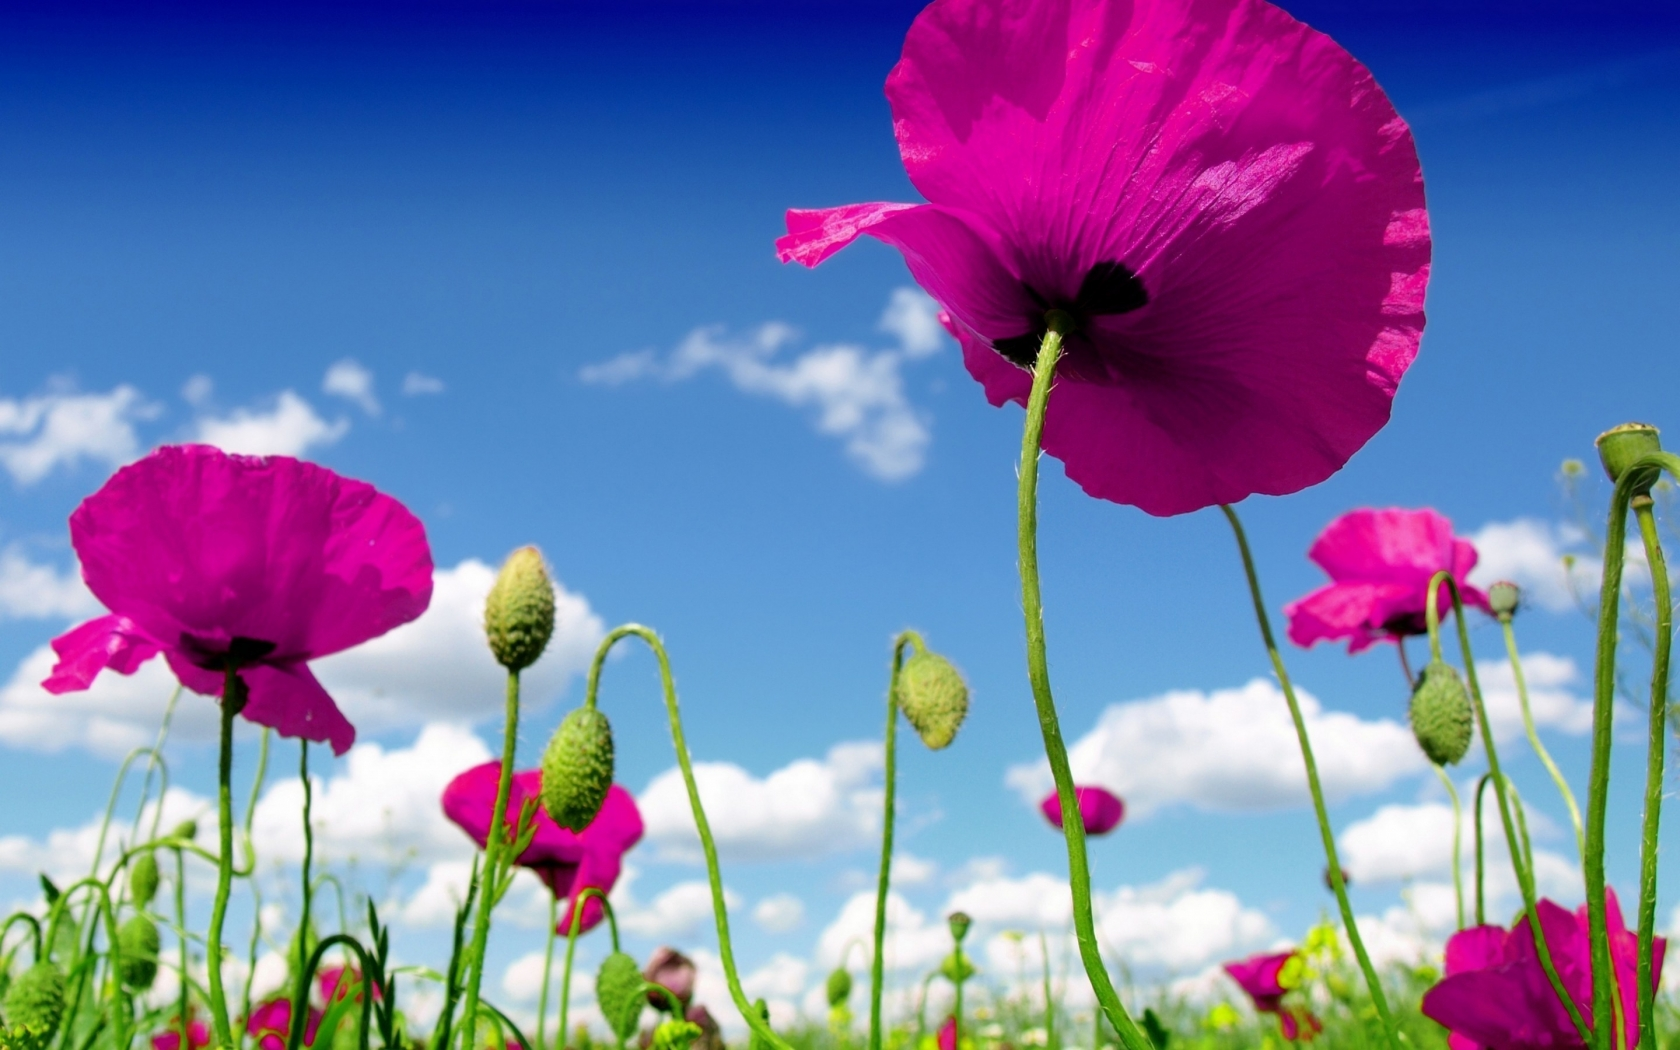 Pink Poppies for 1680 x 1050 widescreen resolution